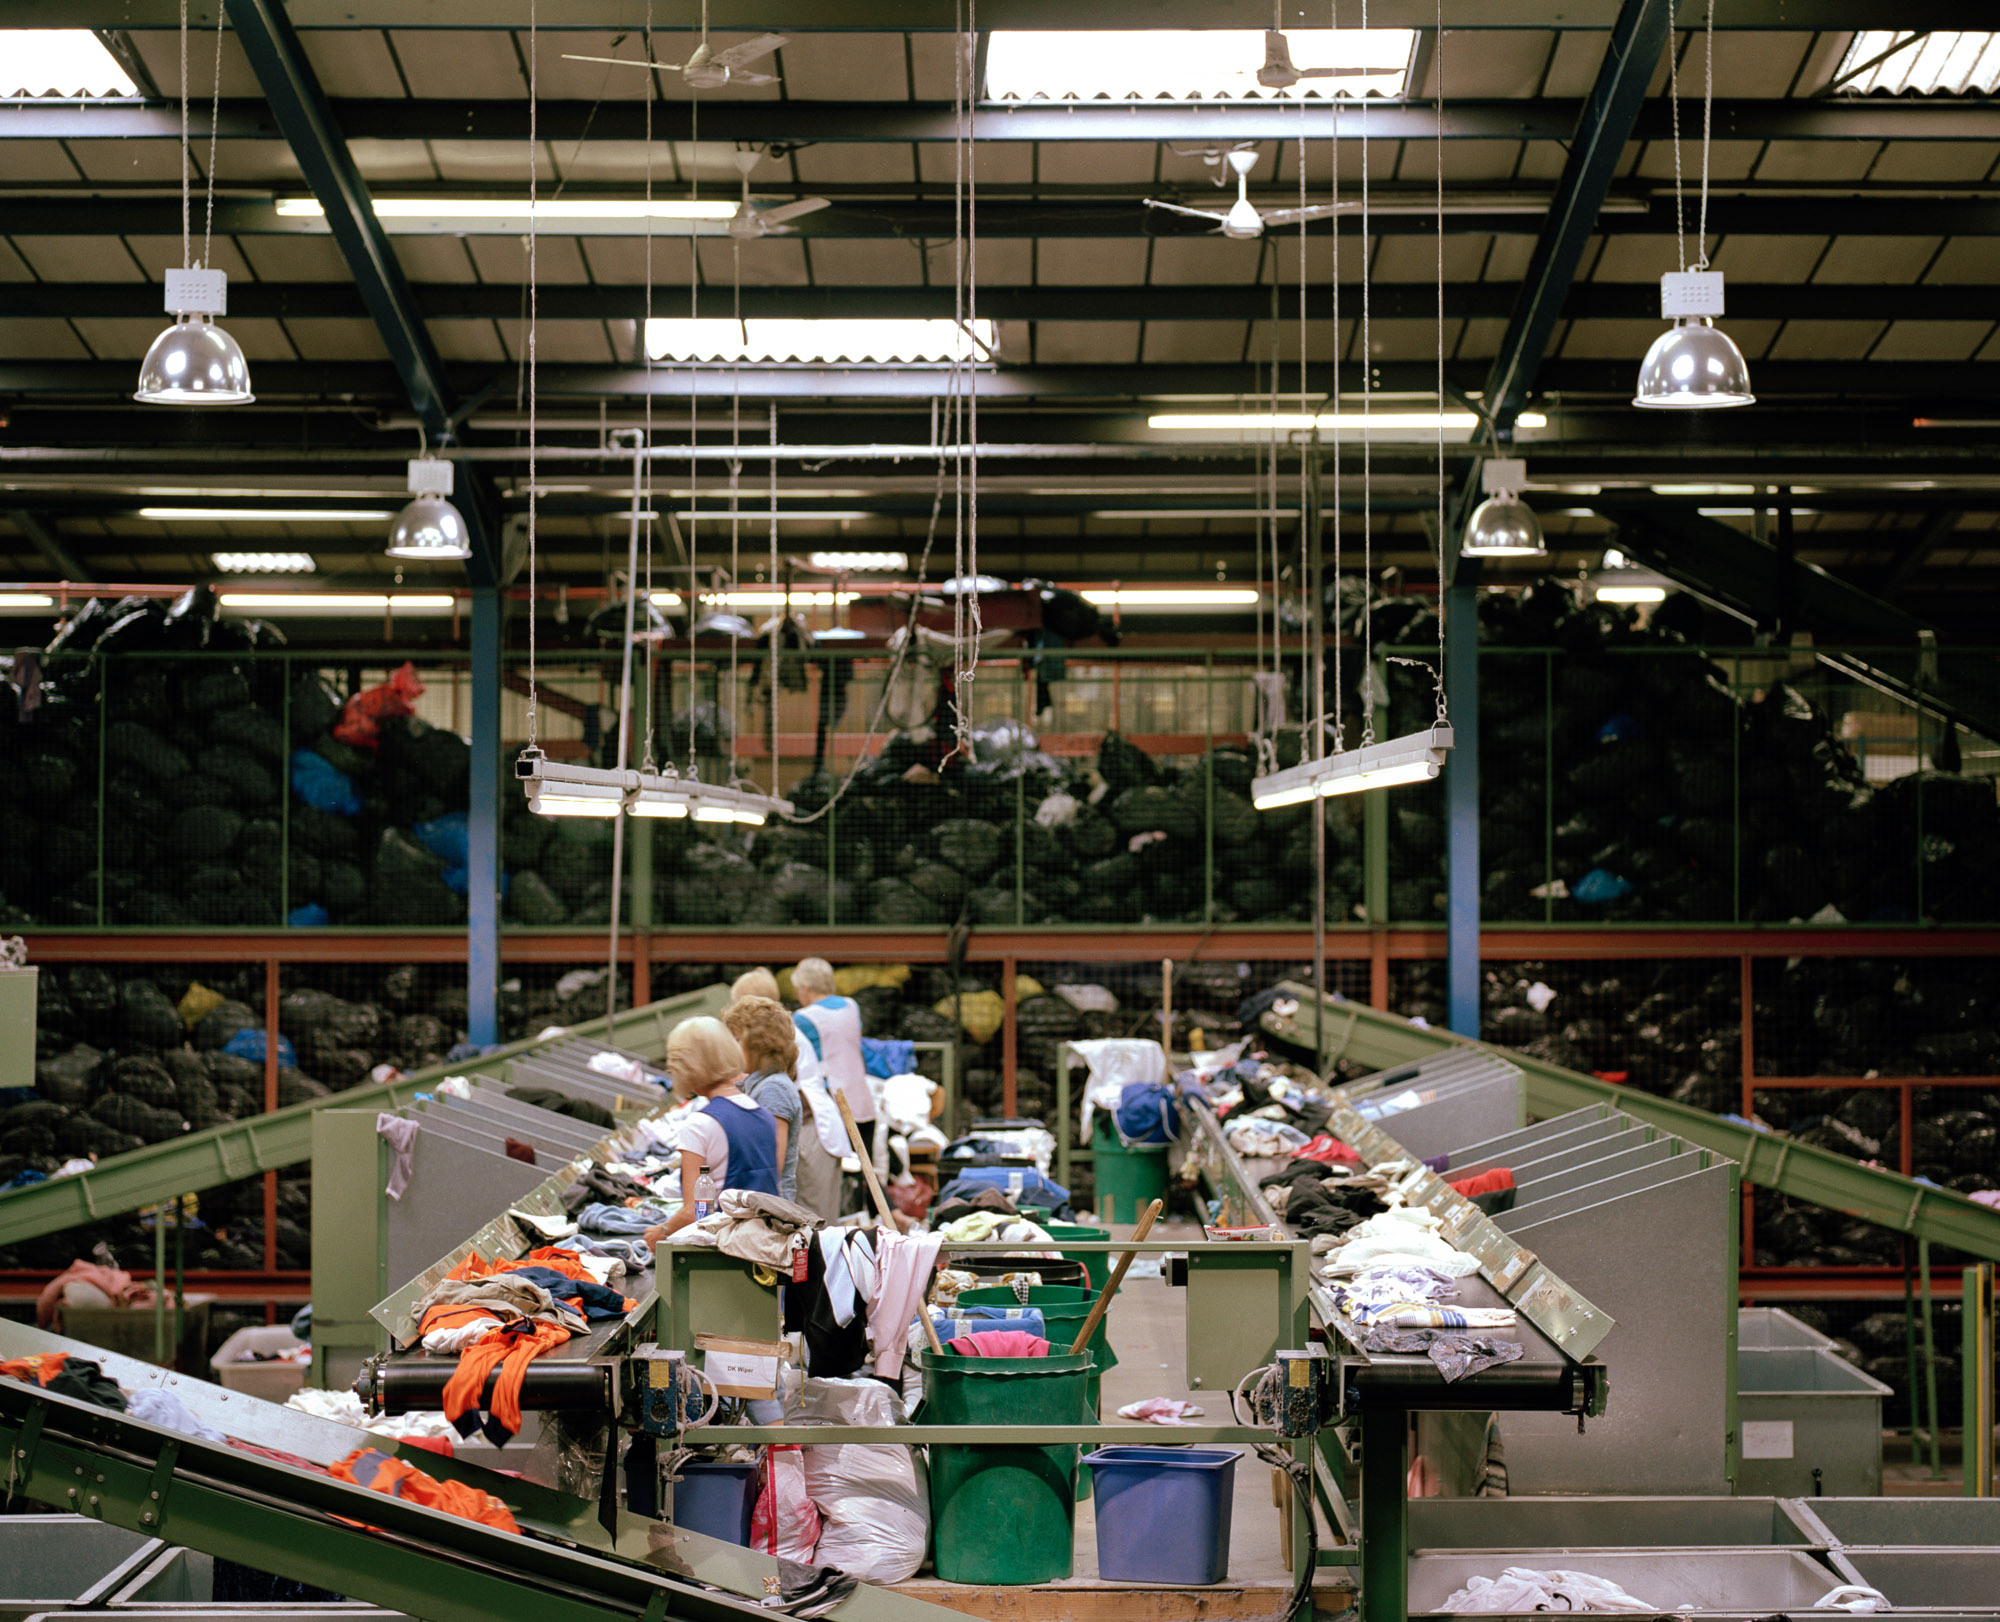 Meanwhile, a textiles recycling depot in Yorkshire collects clothing donated from all over the country. Mountains of black plastic bags are split open and their contents sorted on conveyor belts.